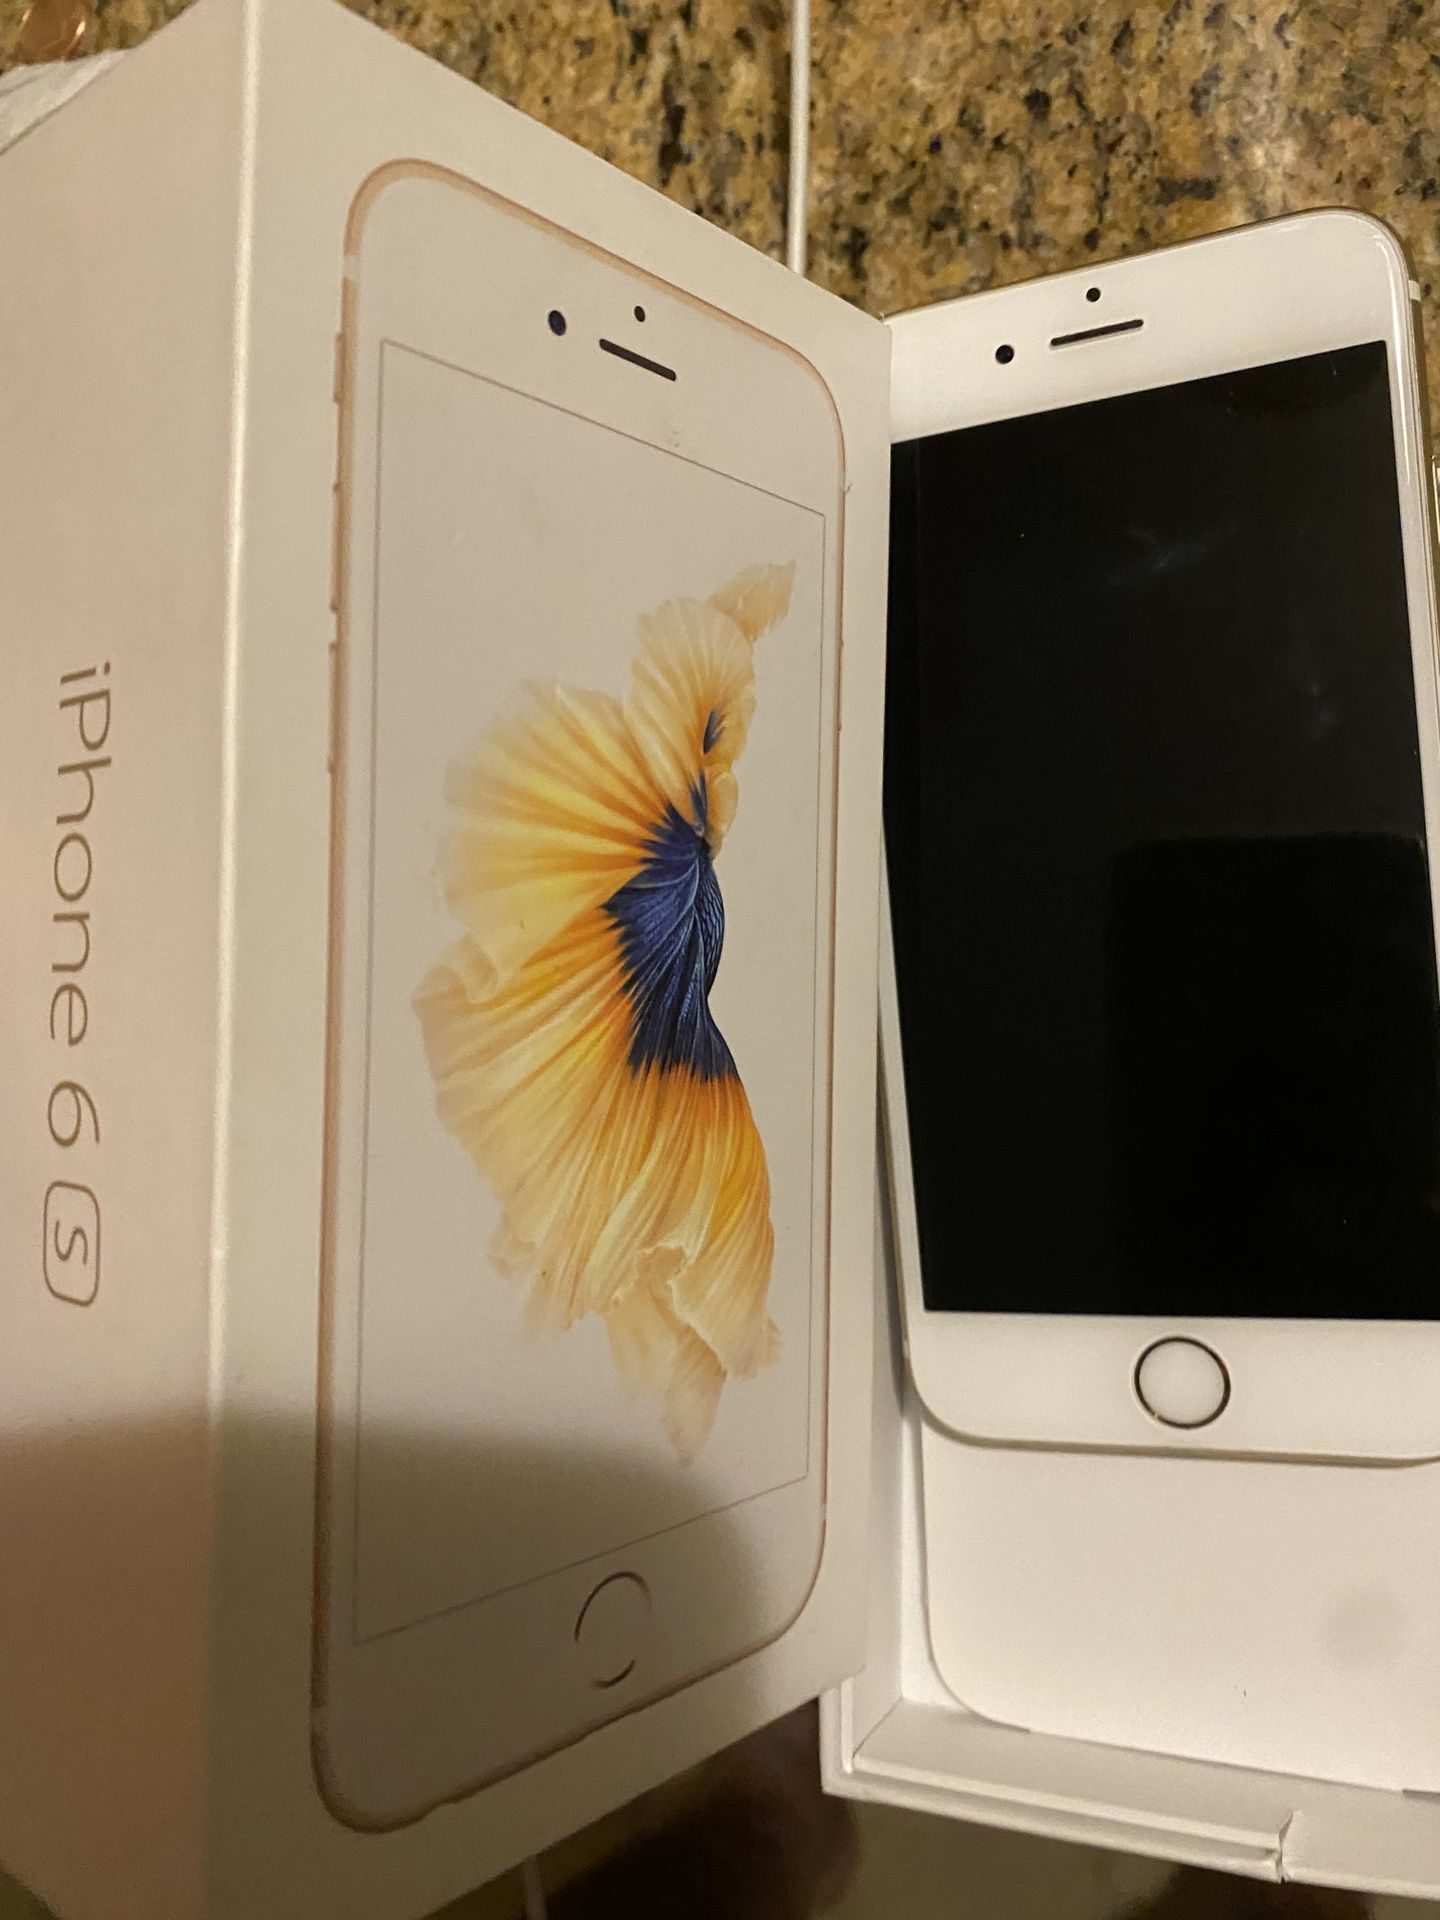 iPhone 6 s. Very clean , bought as a back up unit. Buy it for $130'and get $400 off new phone at t mobile